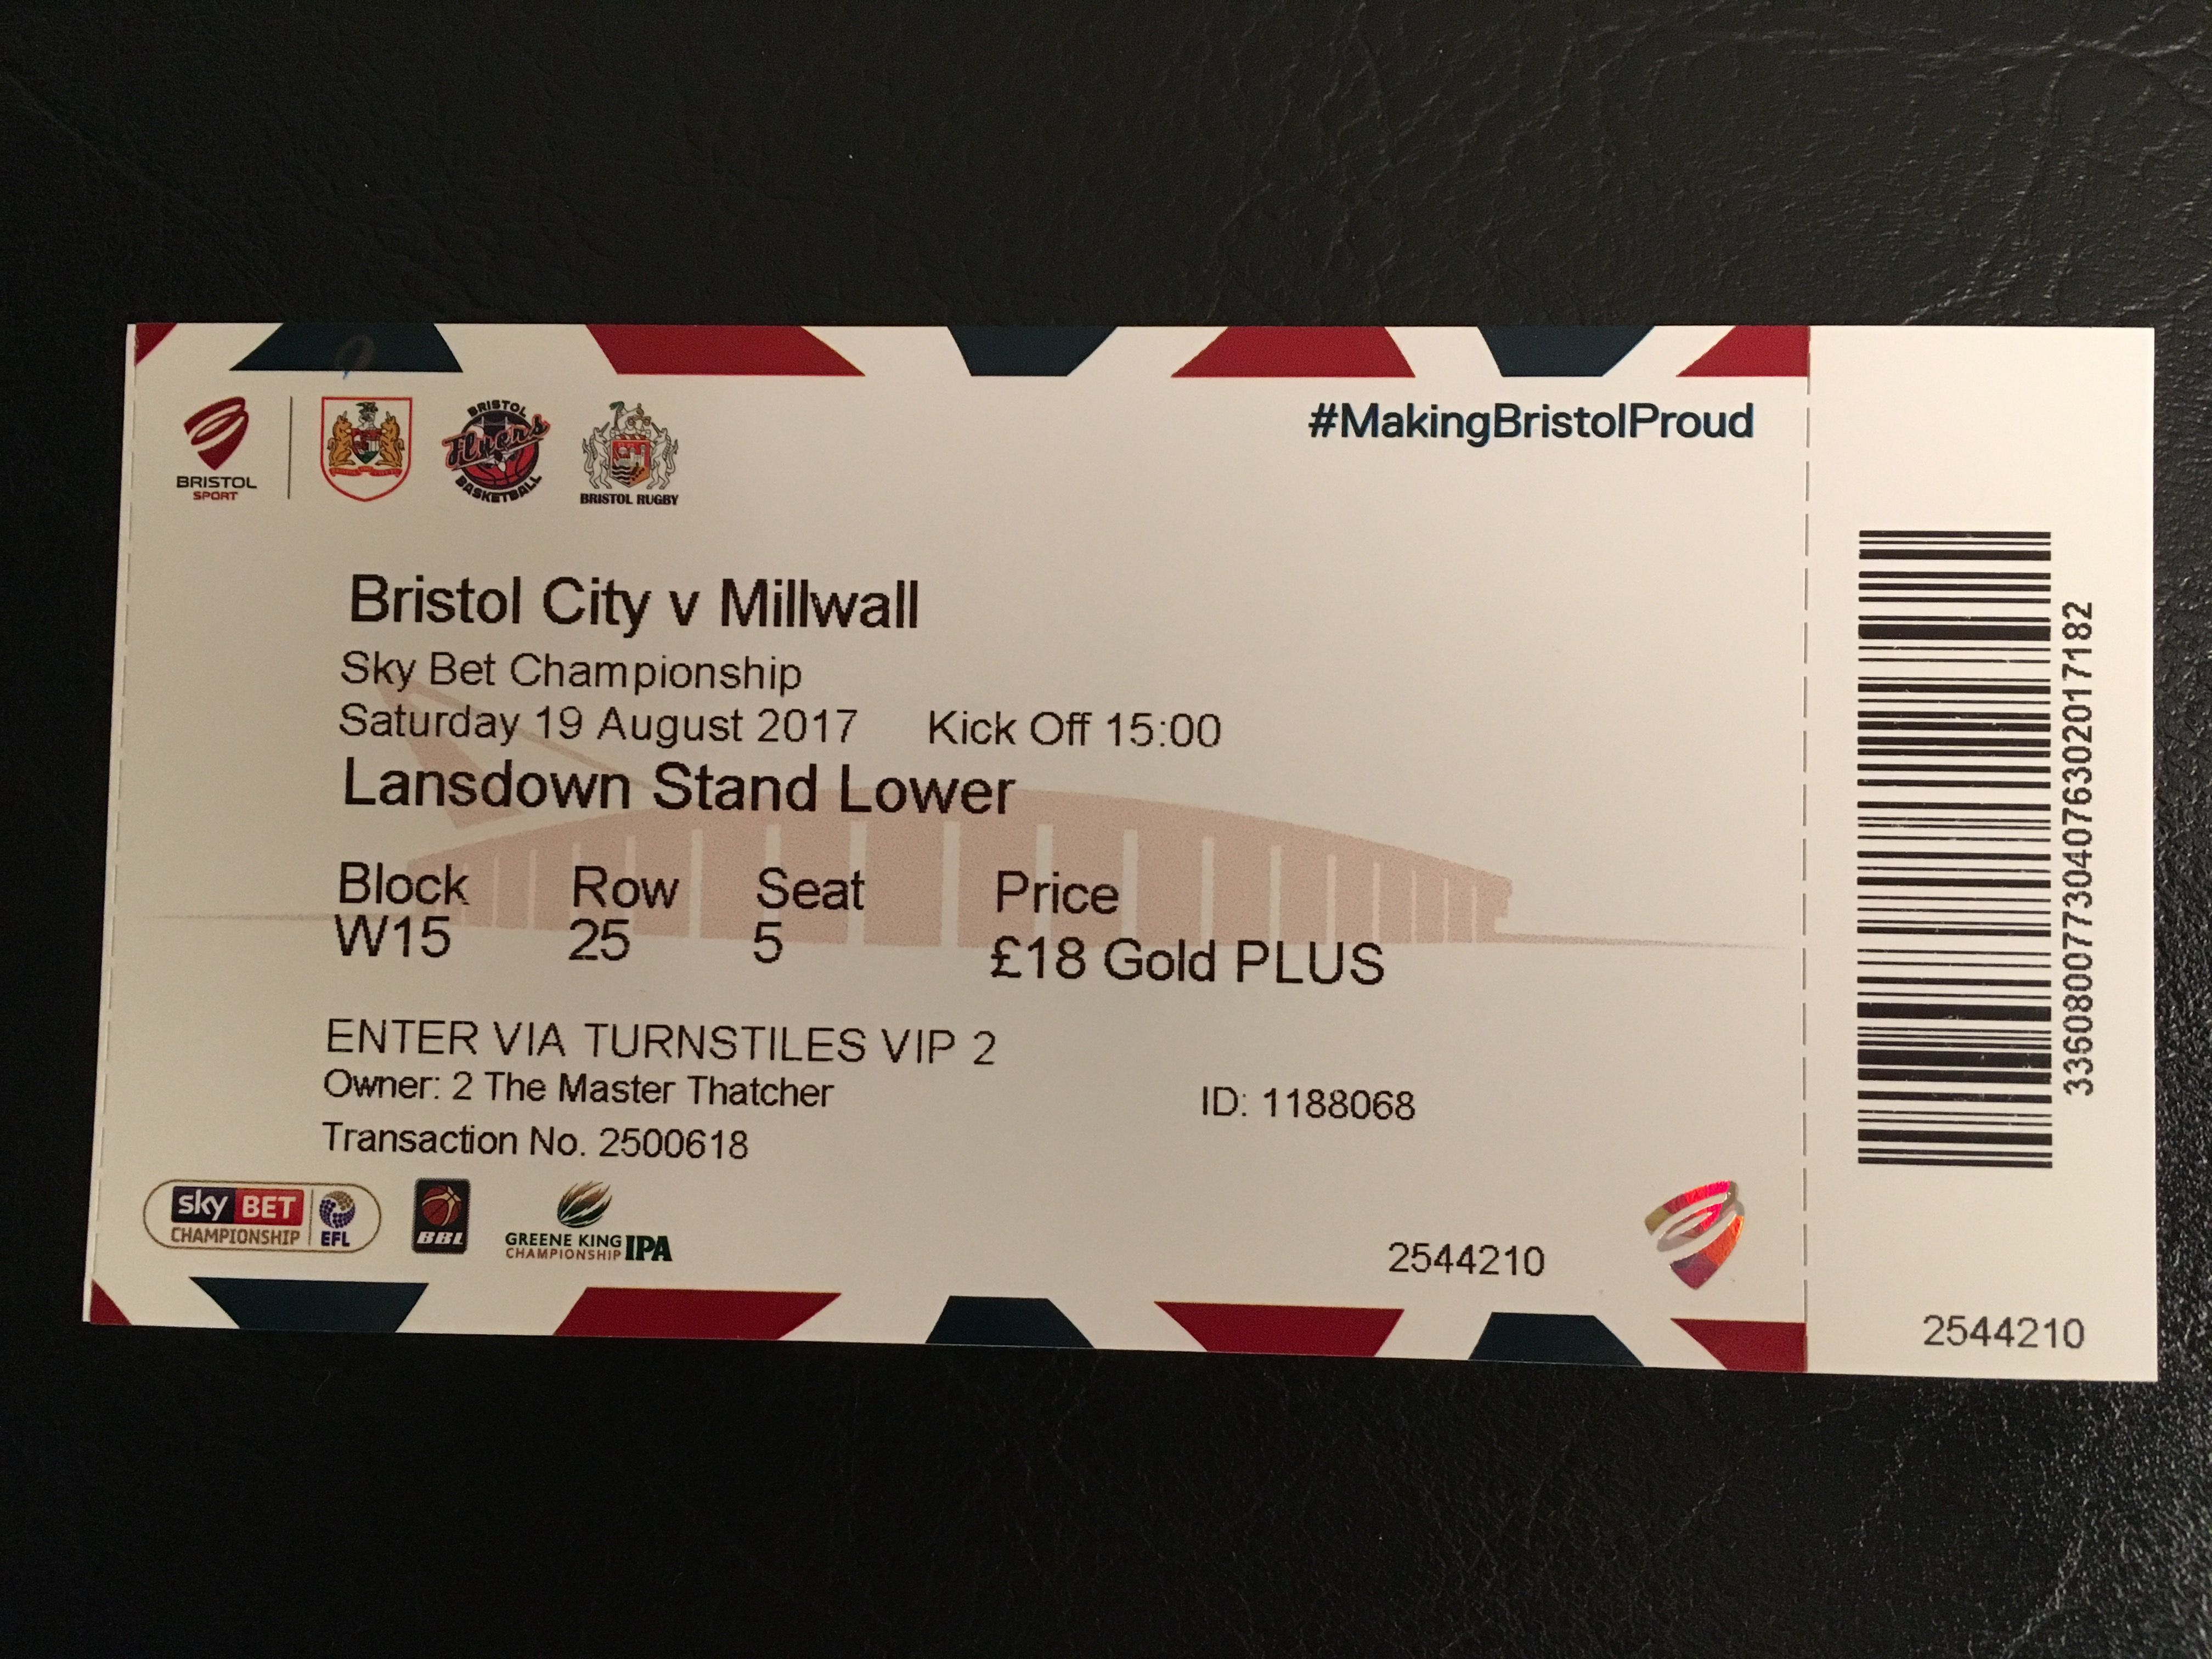 Bristol City v Millwall 19-08-17 Ticket